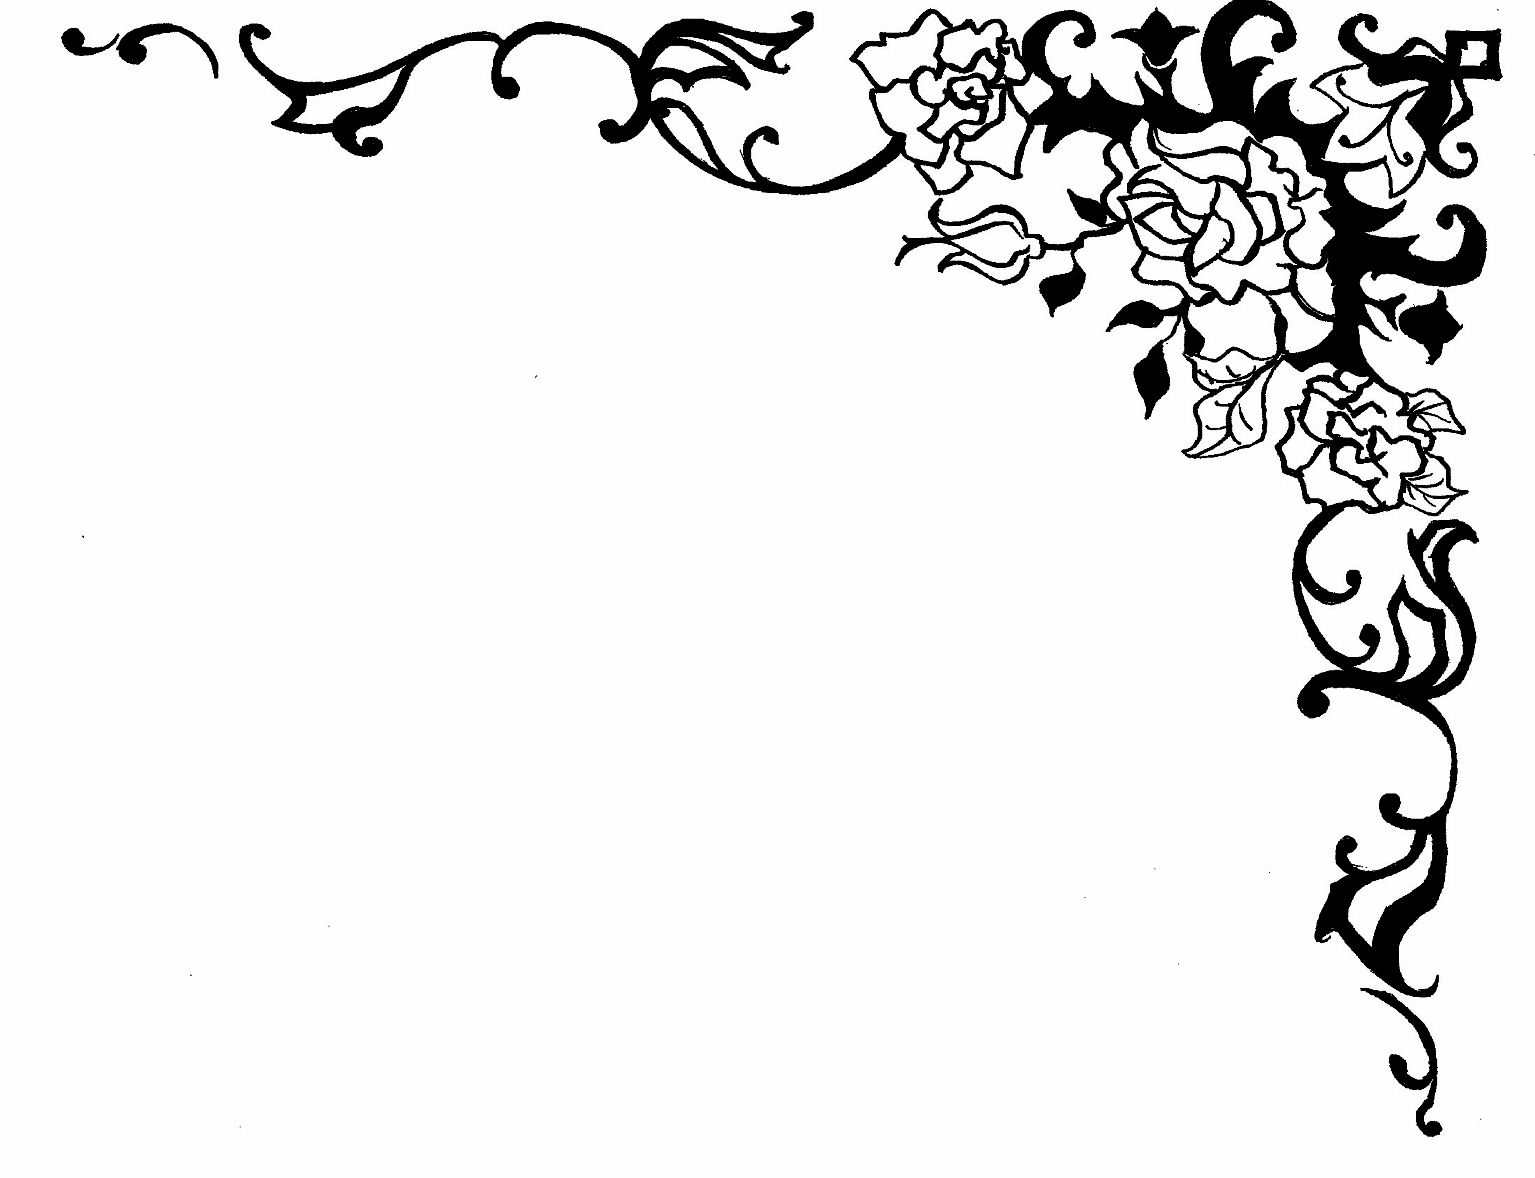 Rose border clipart black and white clipart royalty free library Rose Border Design | Clipart Panda - Free Clipart Images ... clipart royalty free library